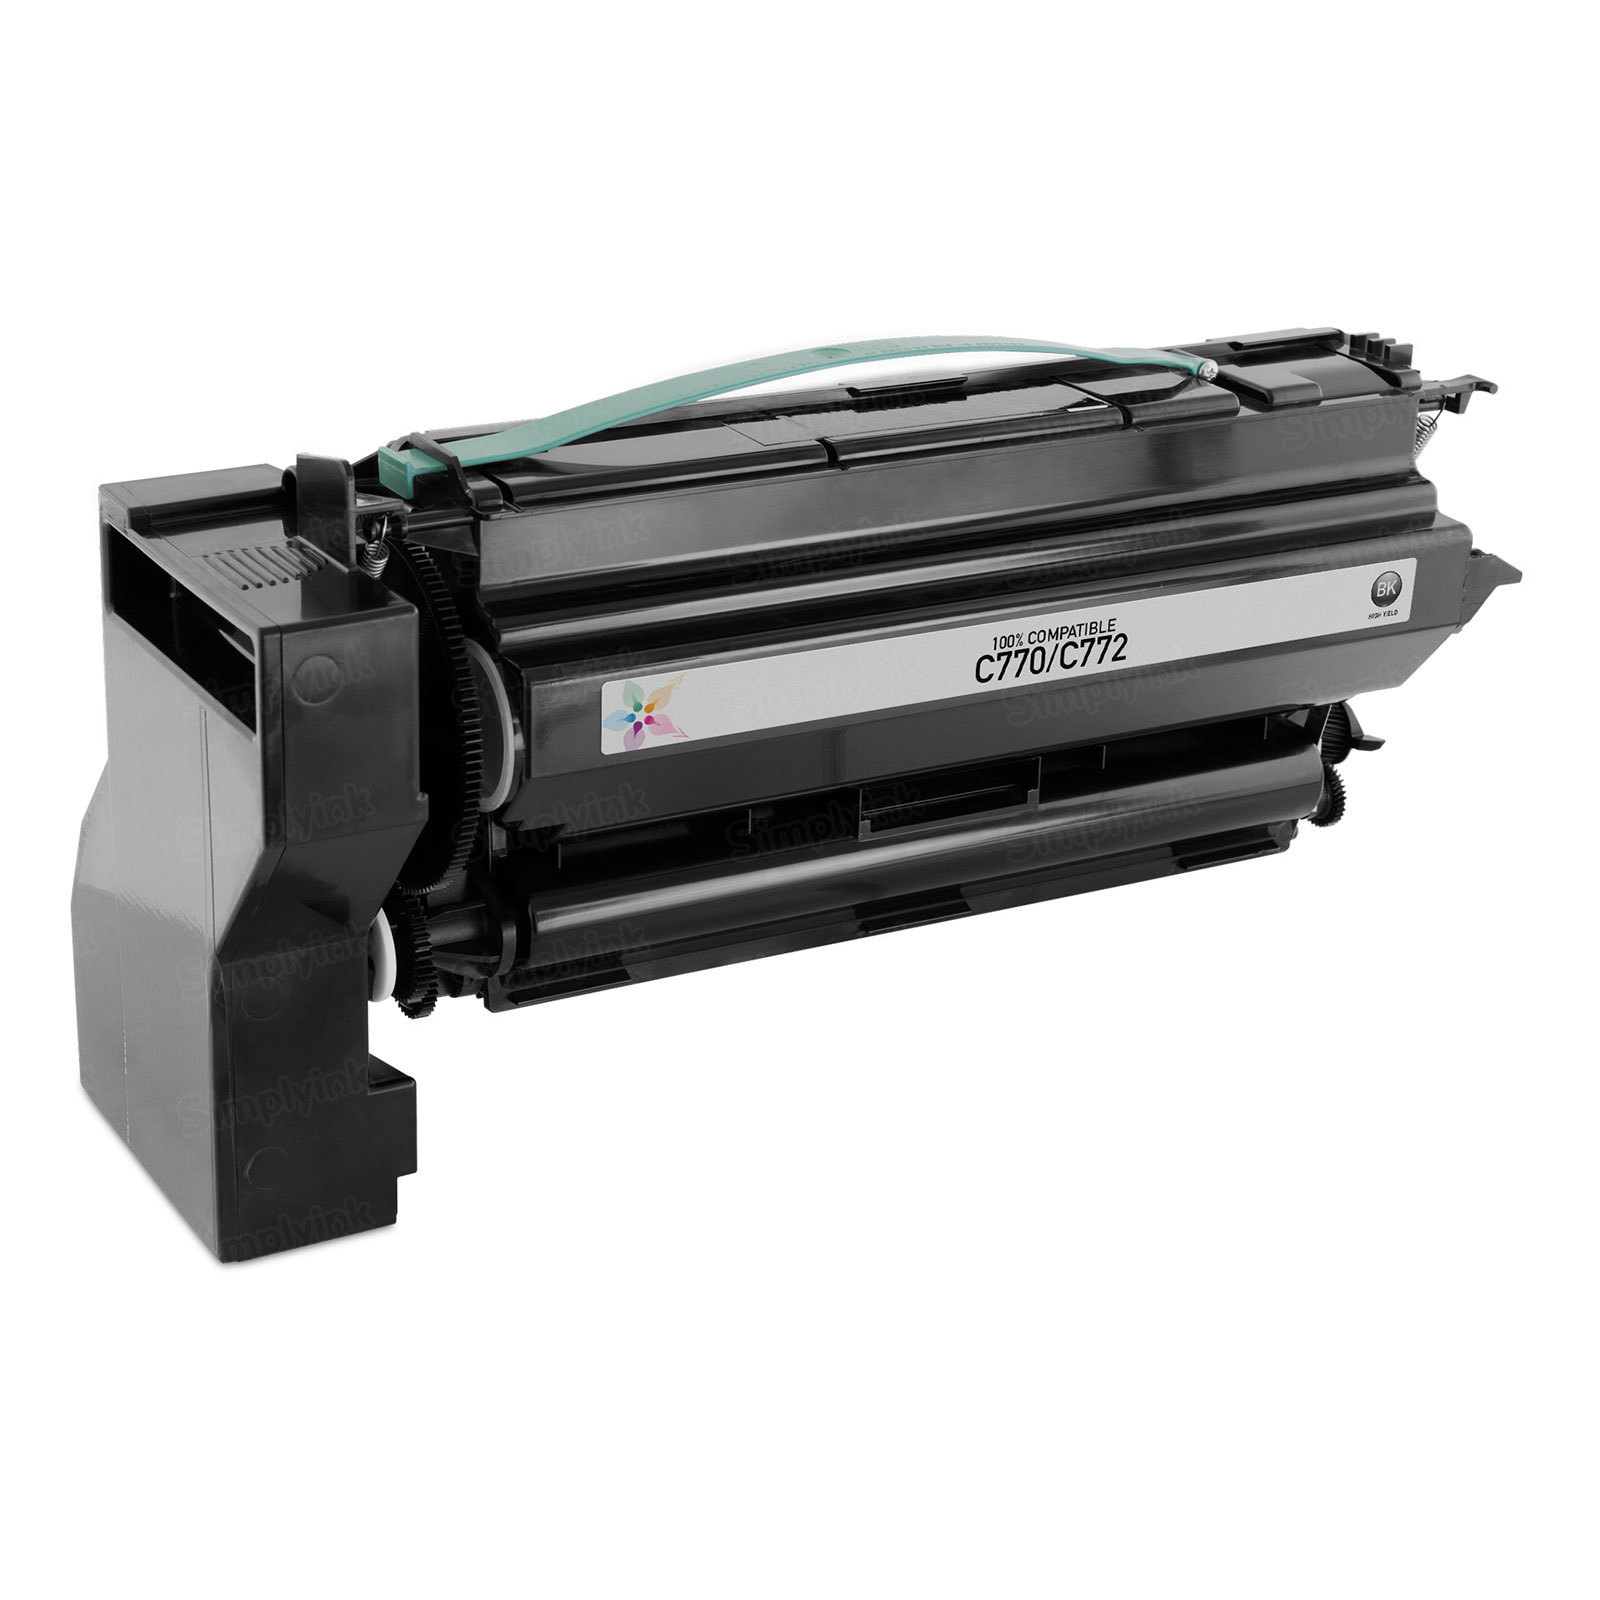 Remanufactured C7702KH HY Black Toner Cartridge for Lexmark C770/C772